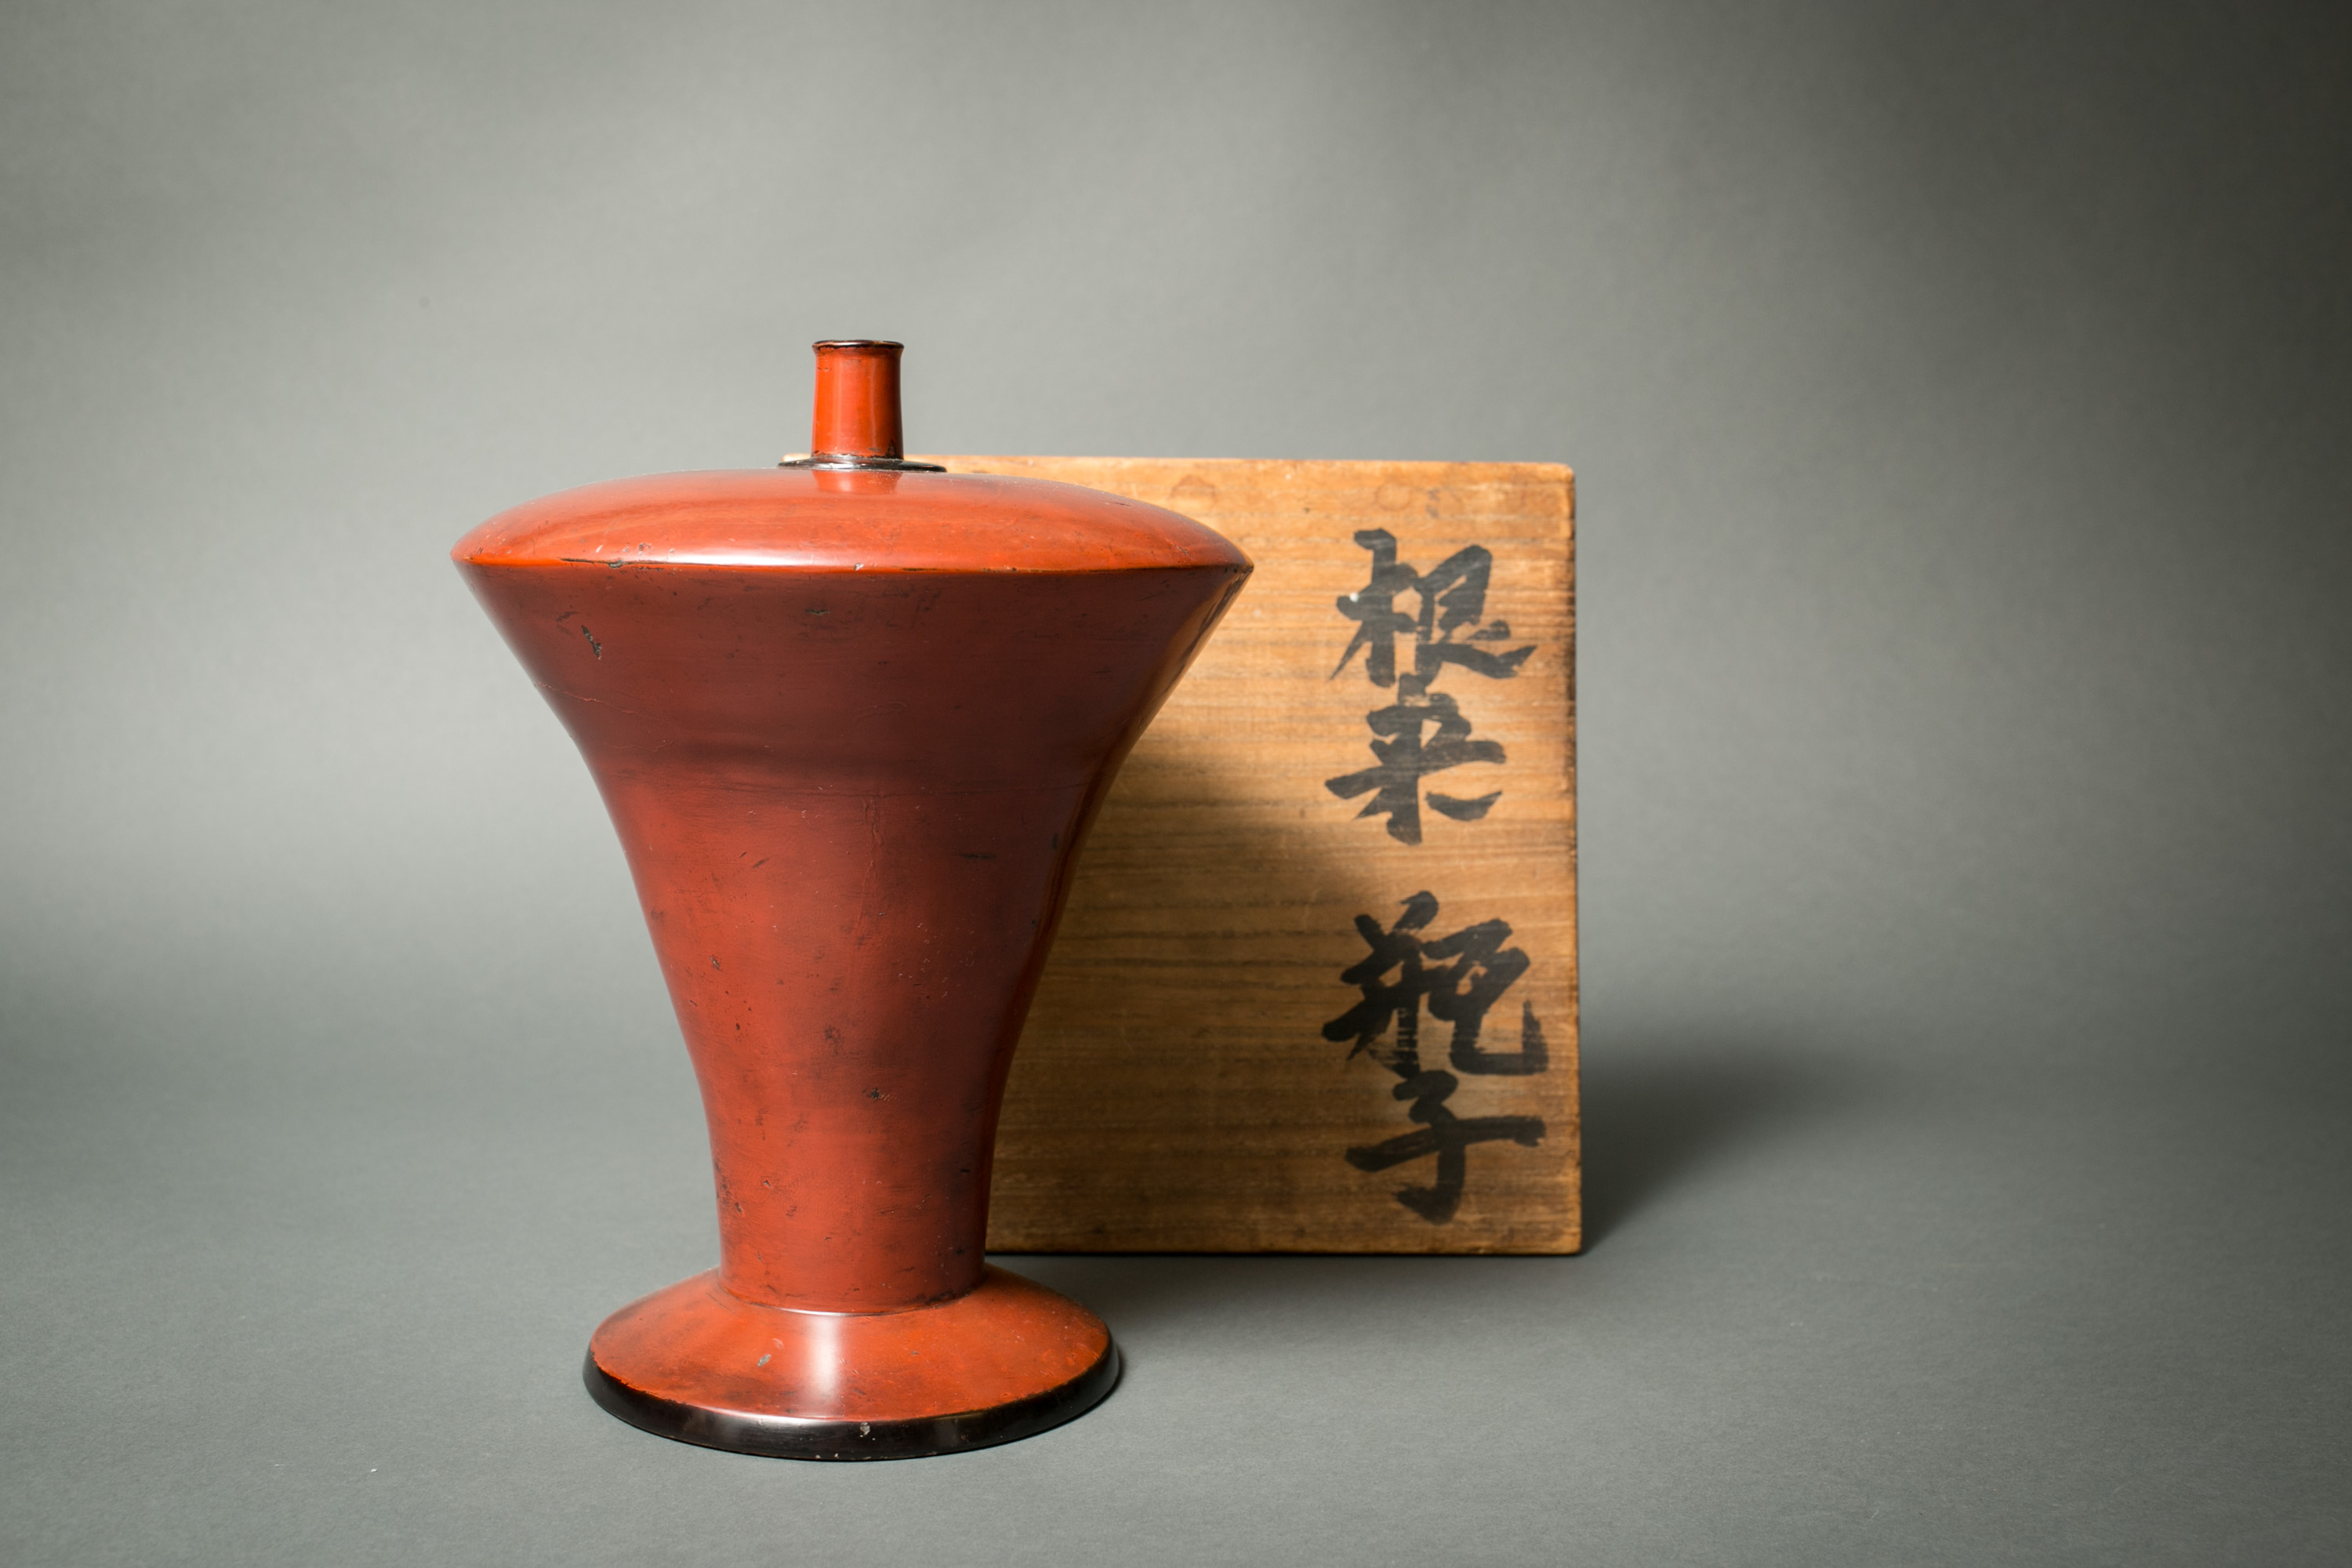 Negoro Lacquer and Wood Tokkuri (Sake Container)